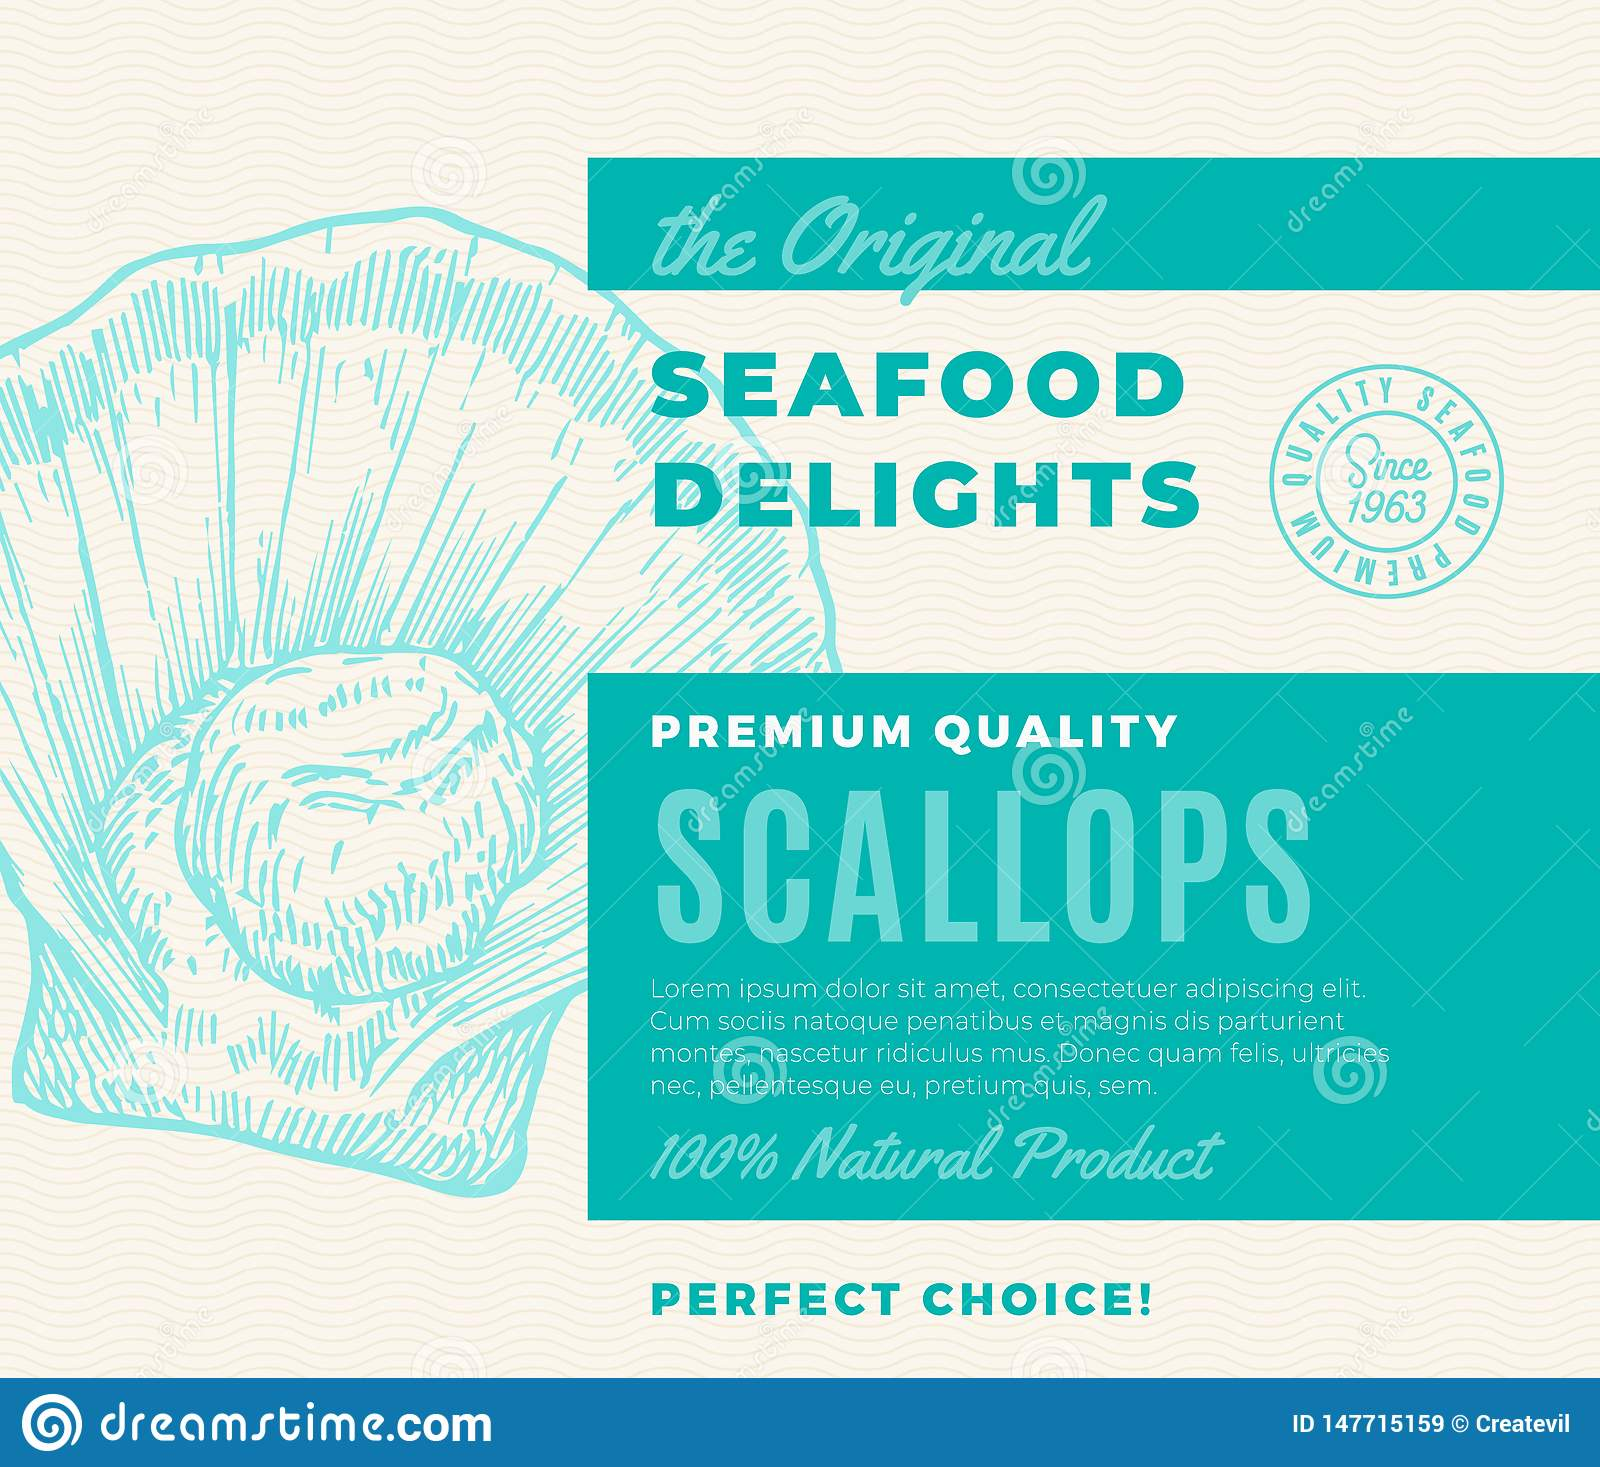 Premium Quality Seafood Delights. Abstract Vector Packaging Design or Label. Modern Typography and Hand Drawn Scallop